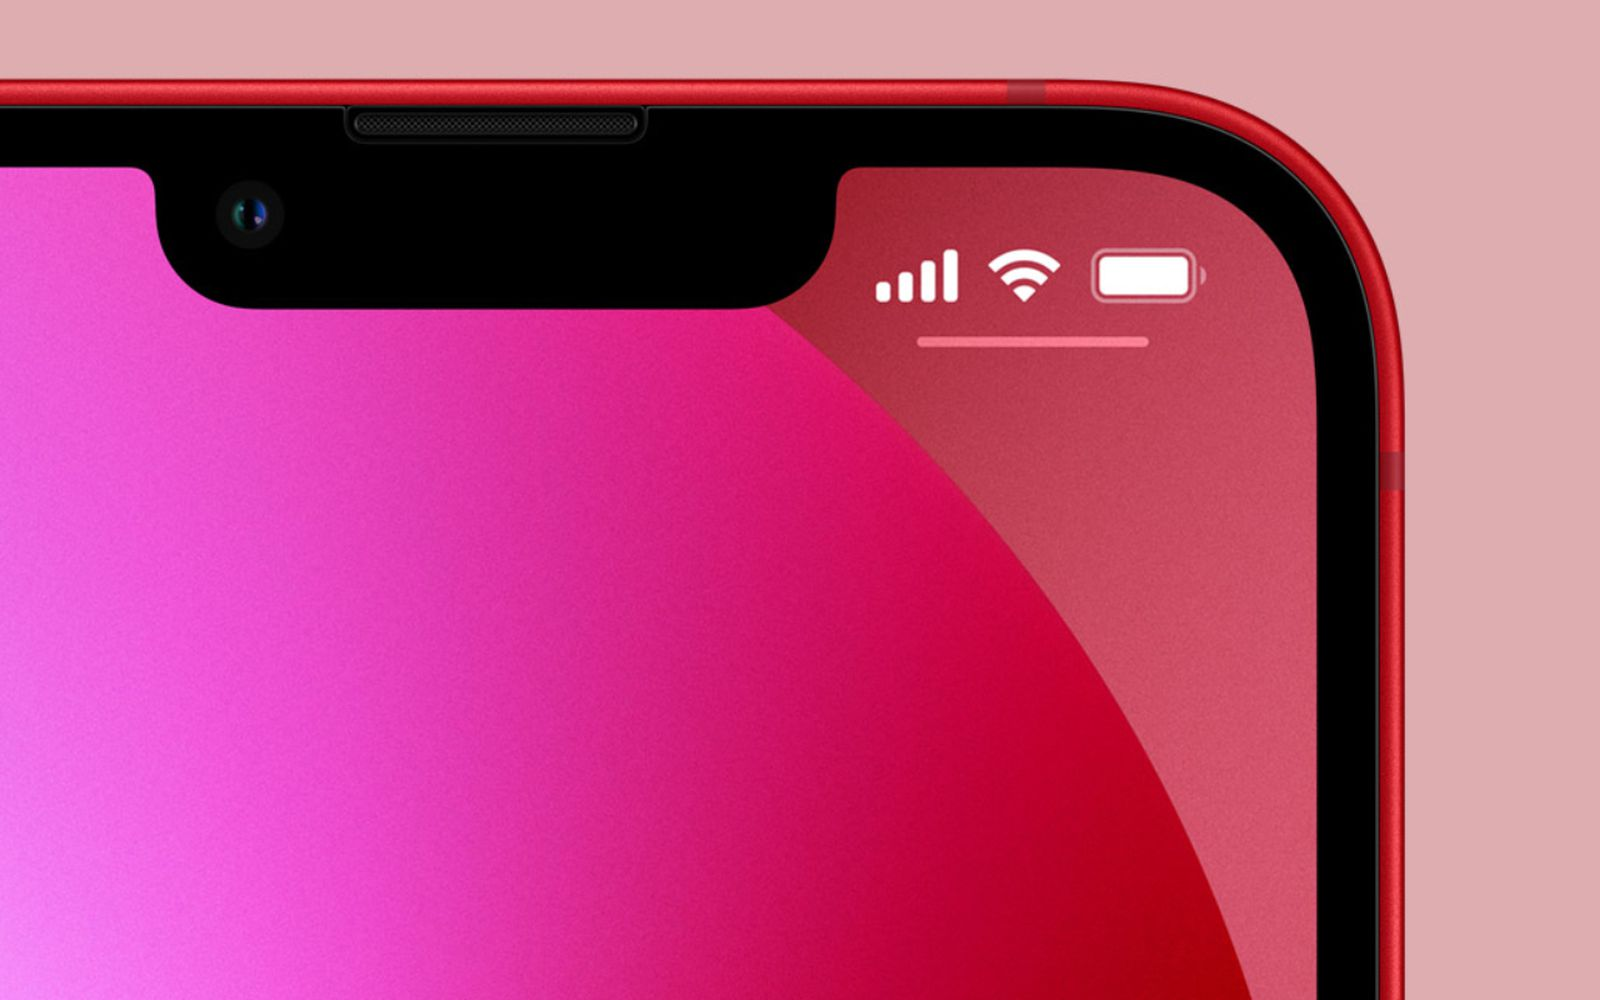 iPhone 13 Still Doesn't Display Battery Percentage in the Status Bar, Despite Smaller Notch - MacRumors